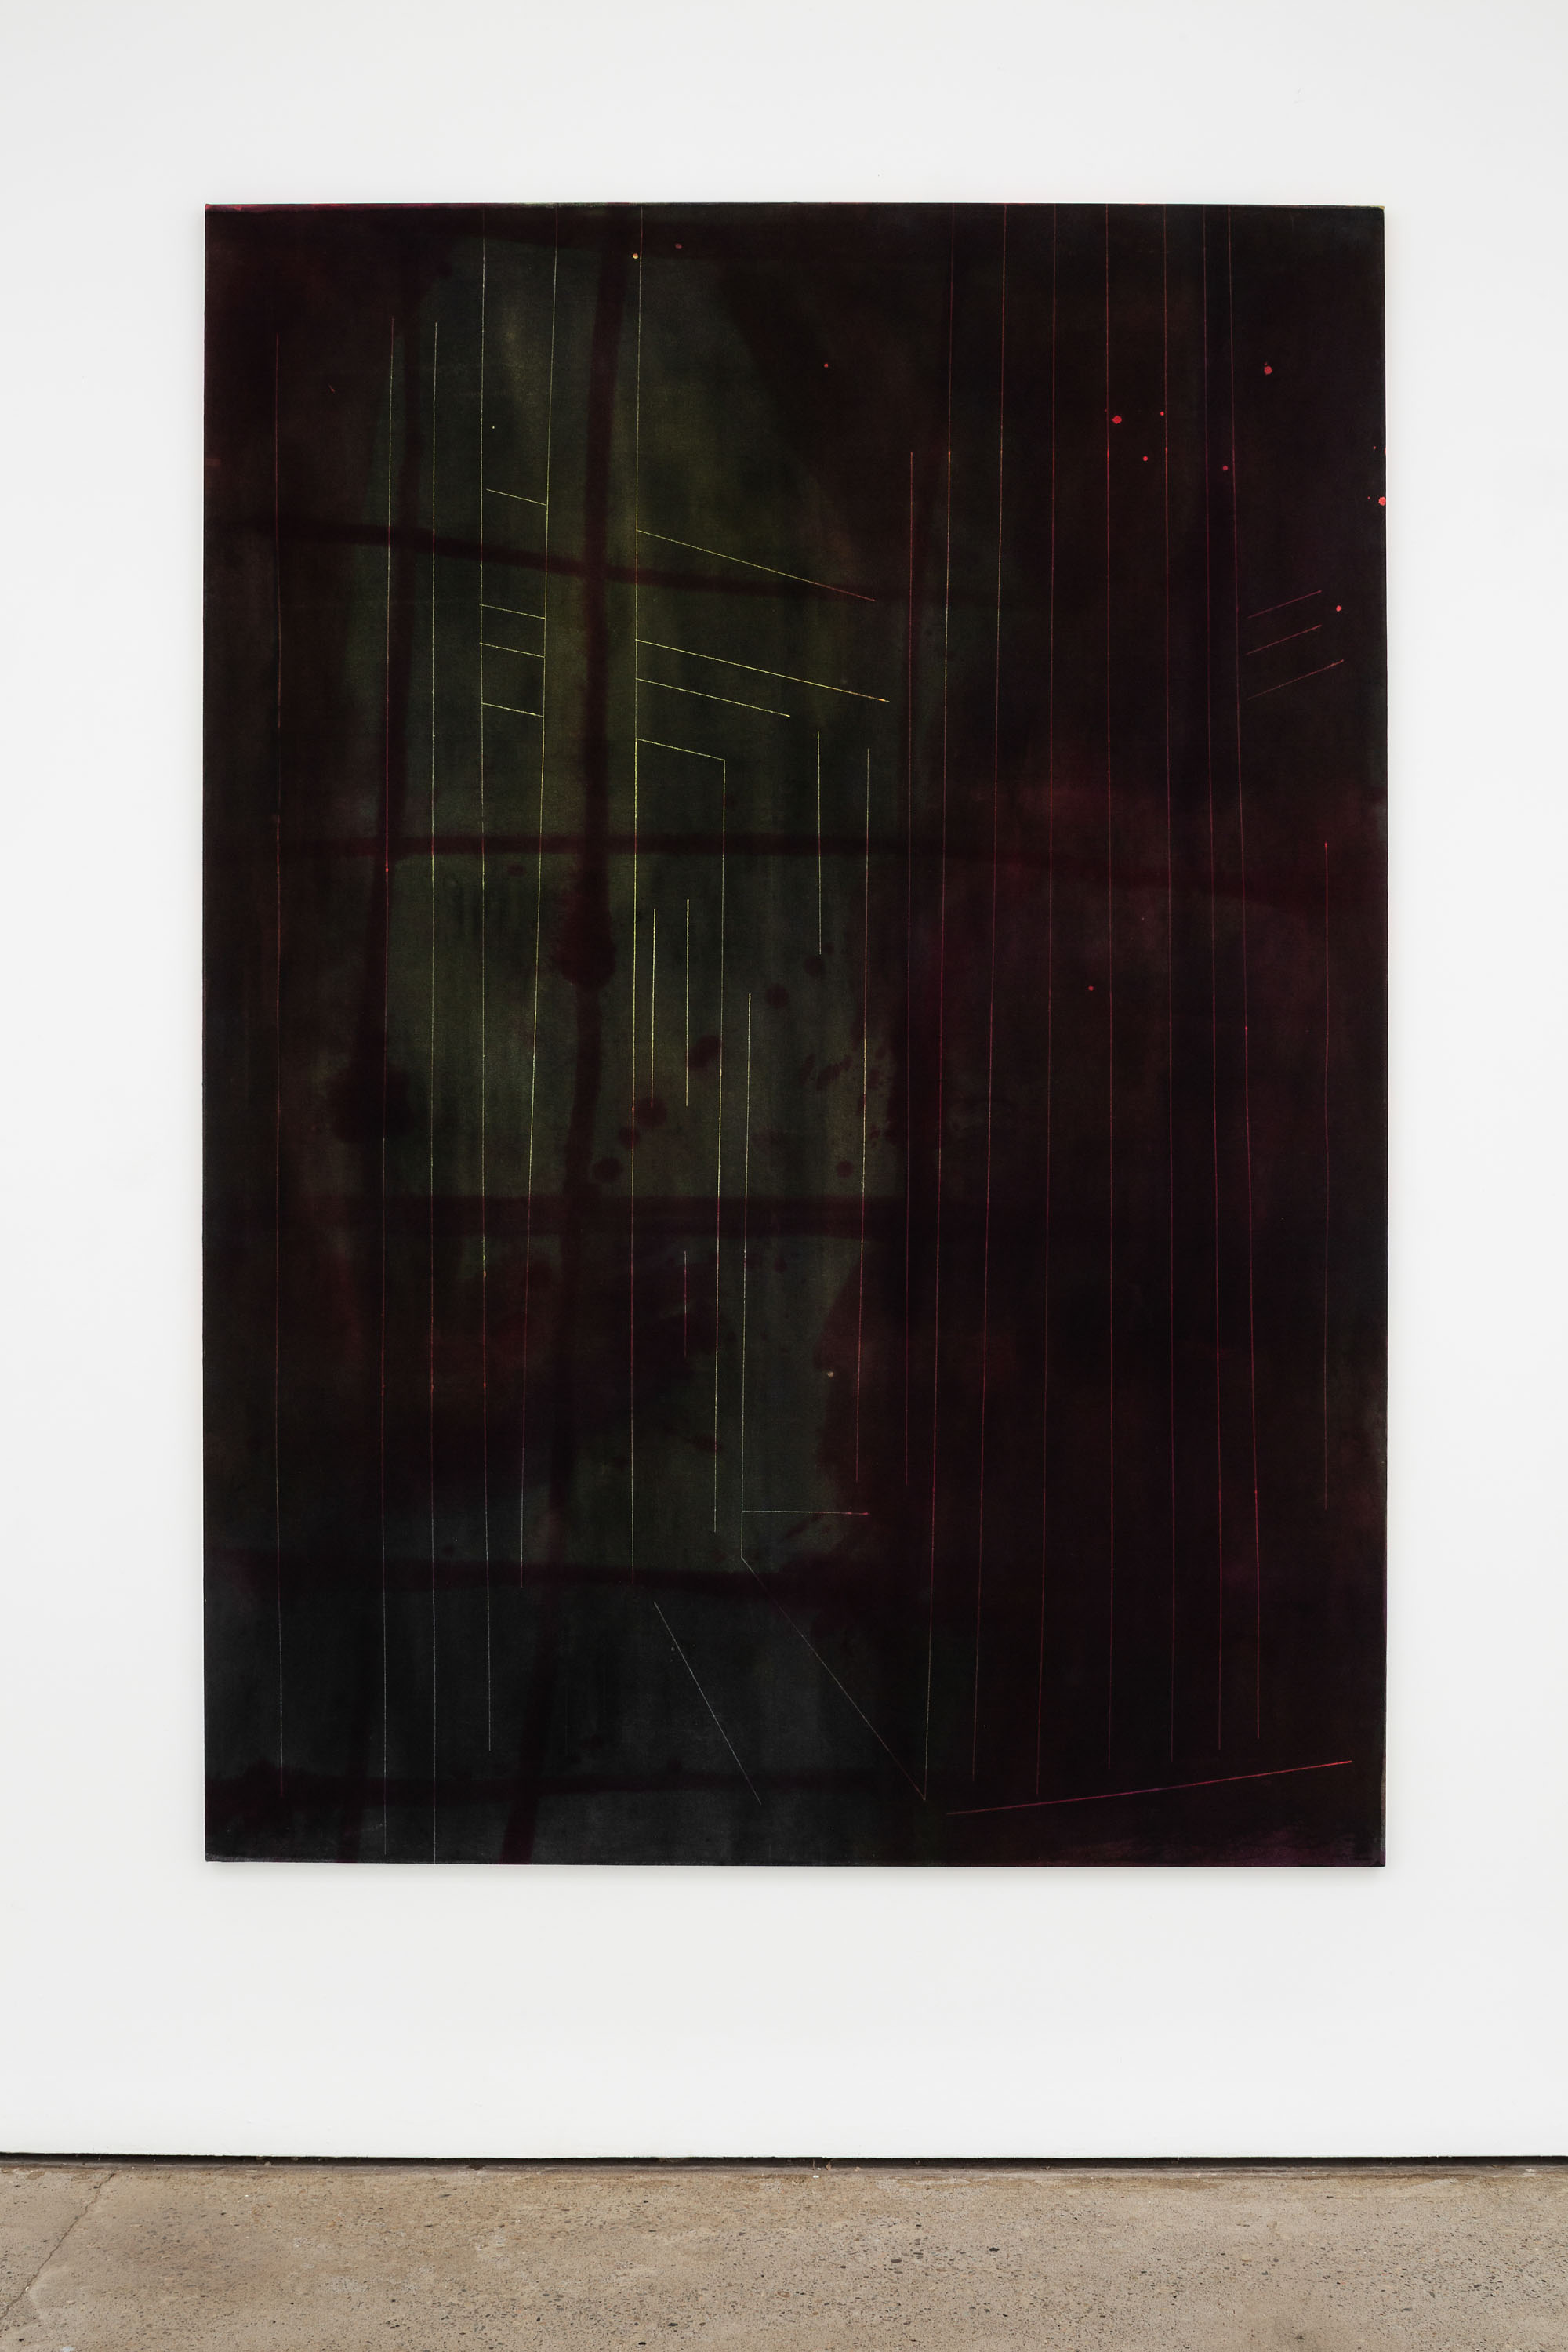 The Way In, 2021, Wax resist, dyed waxed calico, 225 x 160 x 2.5 cm, 88 5/8 x 63 x 1 in